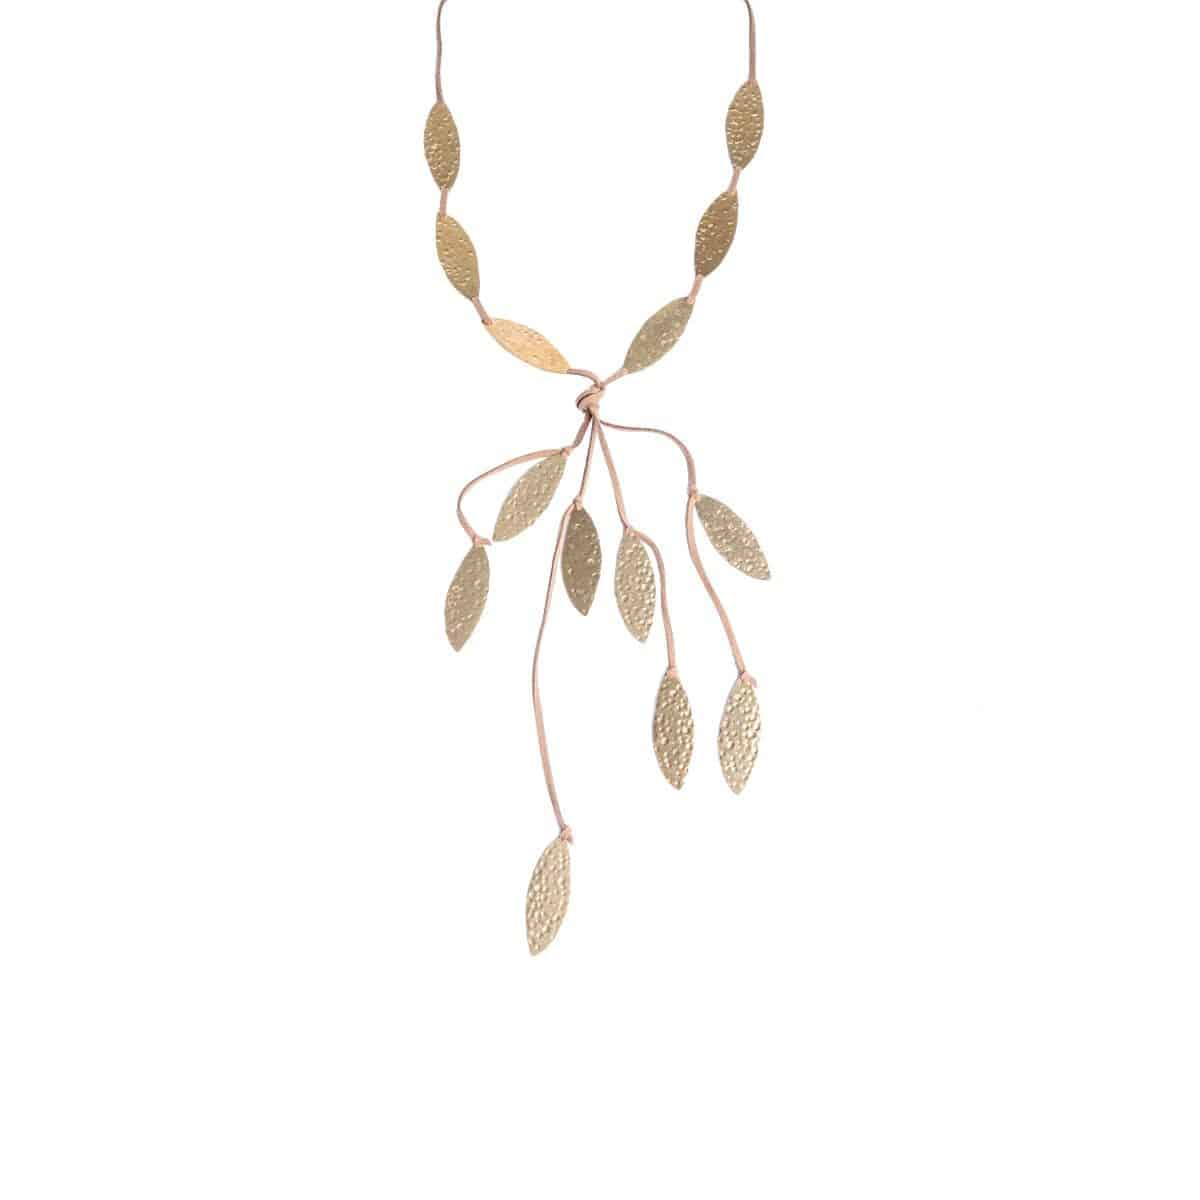 Salix long bowtie necklace with brown suede and elongated pieces with gold-plated notches